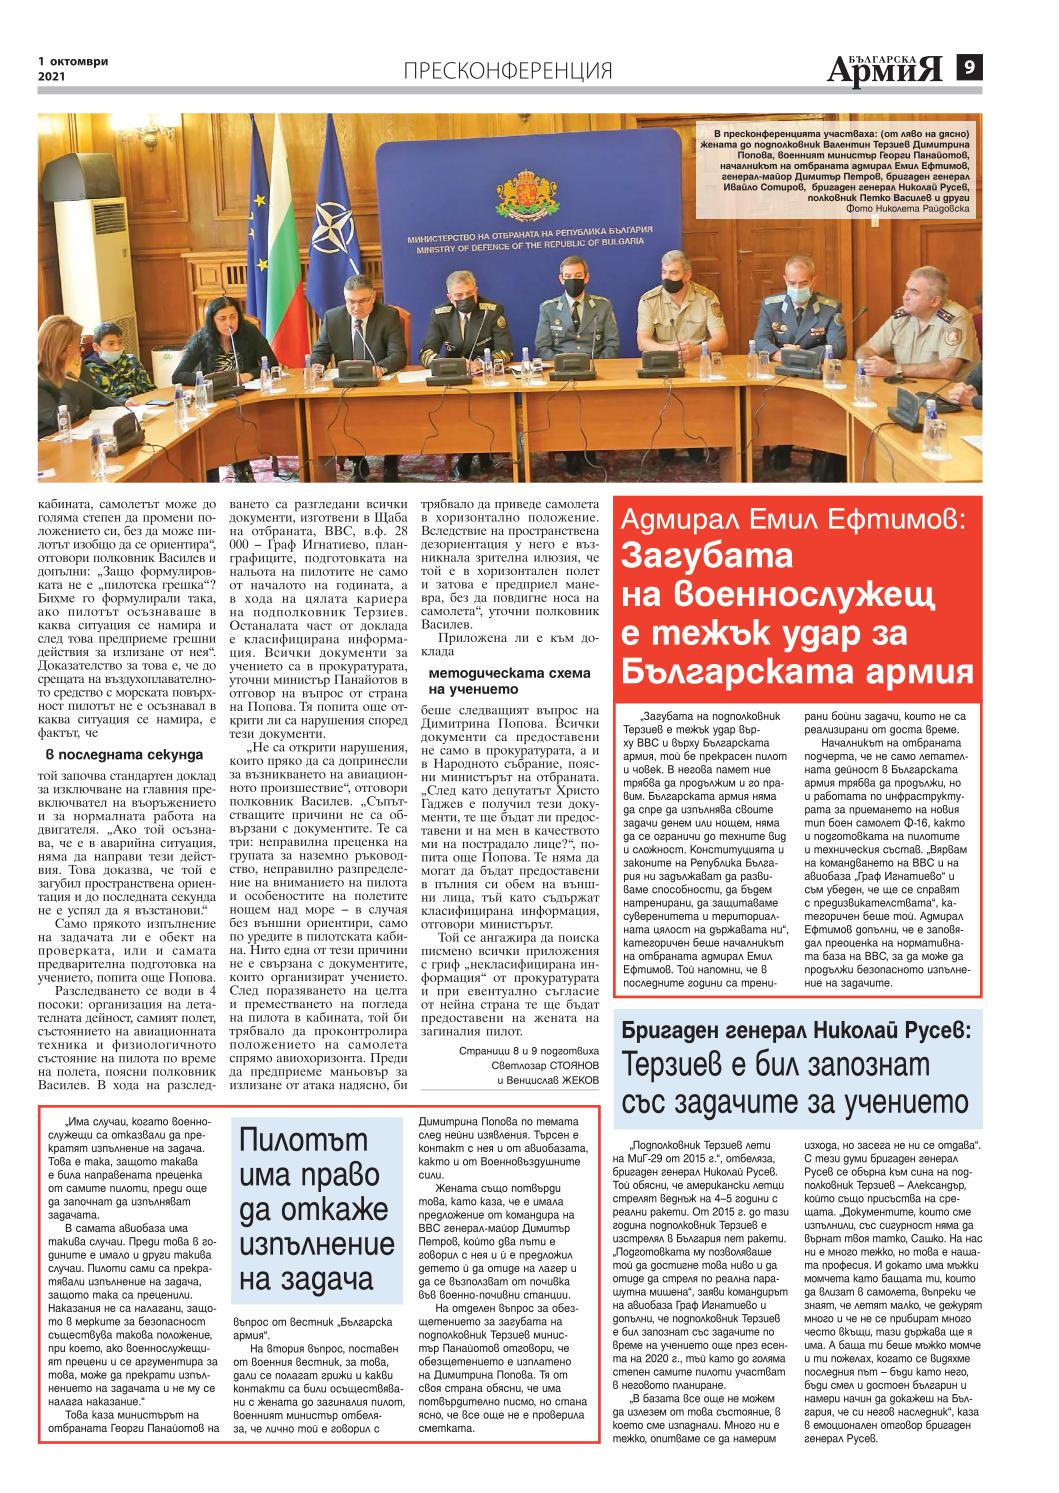 https://armymedia.bg/wp-content/uploads/2021/10/09.page1_.jpg